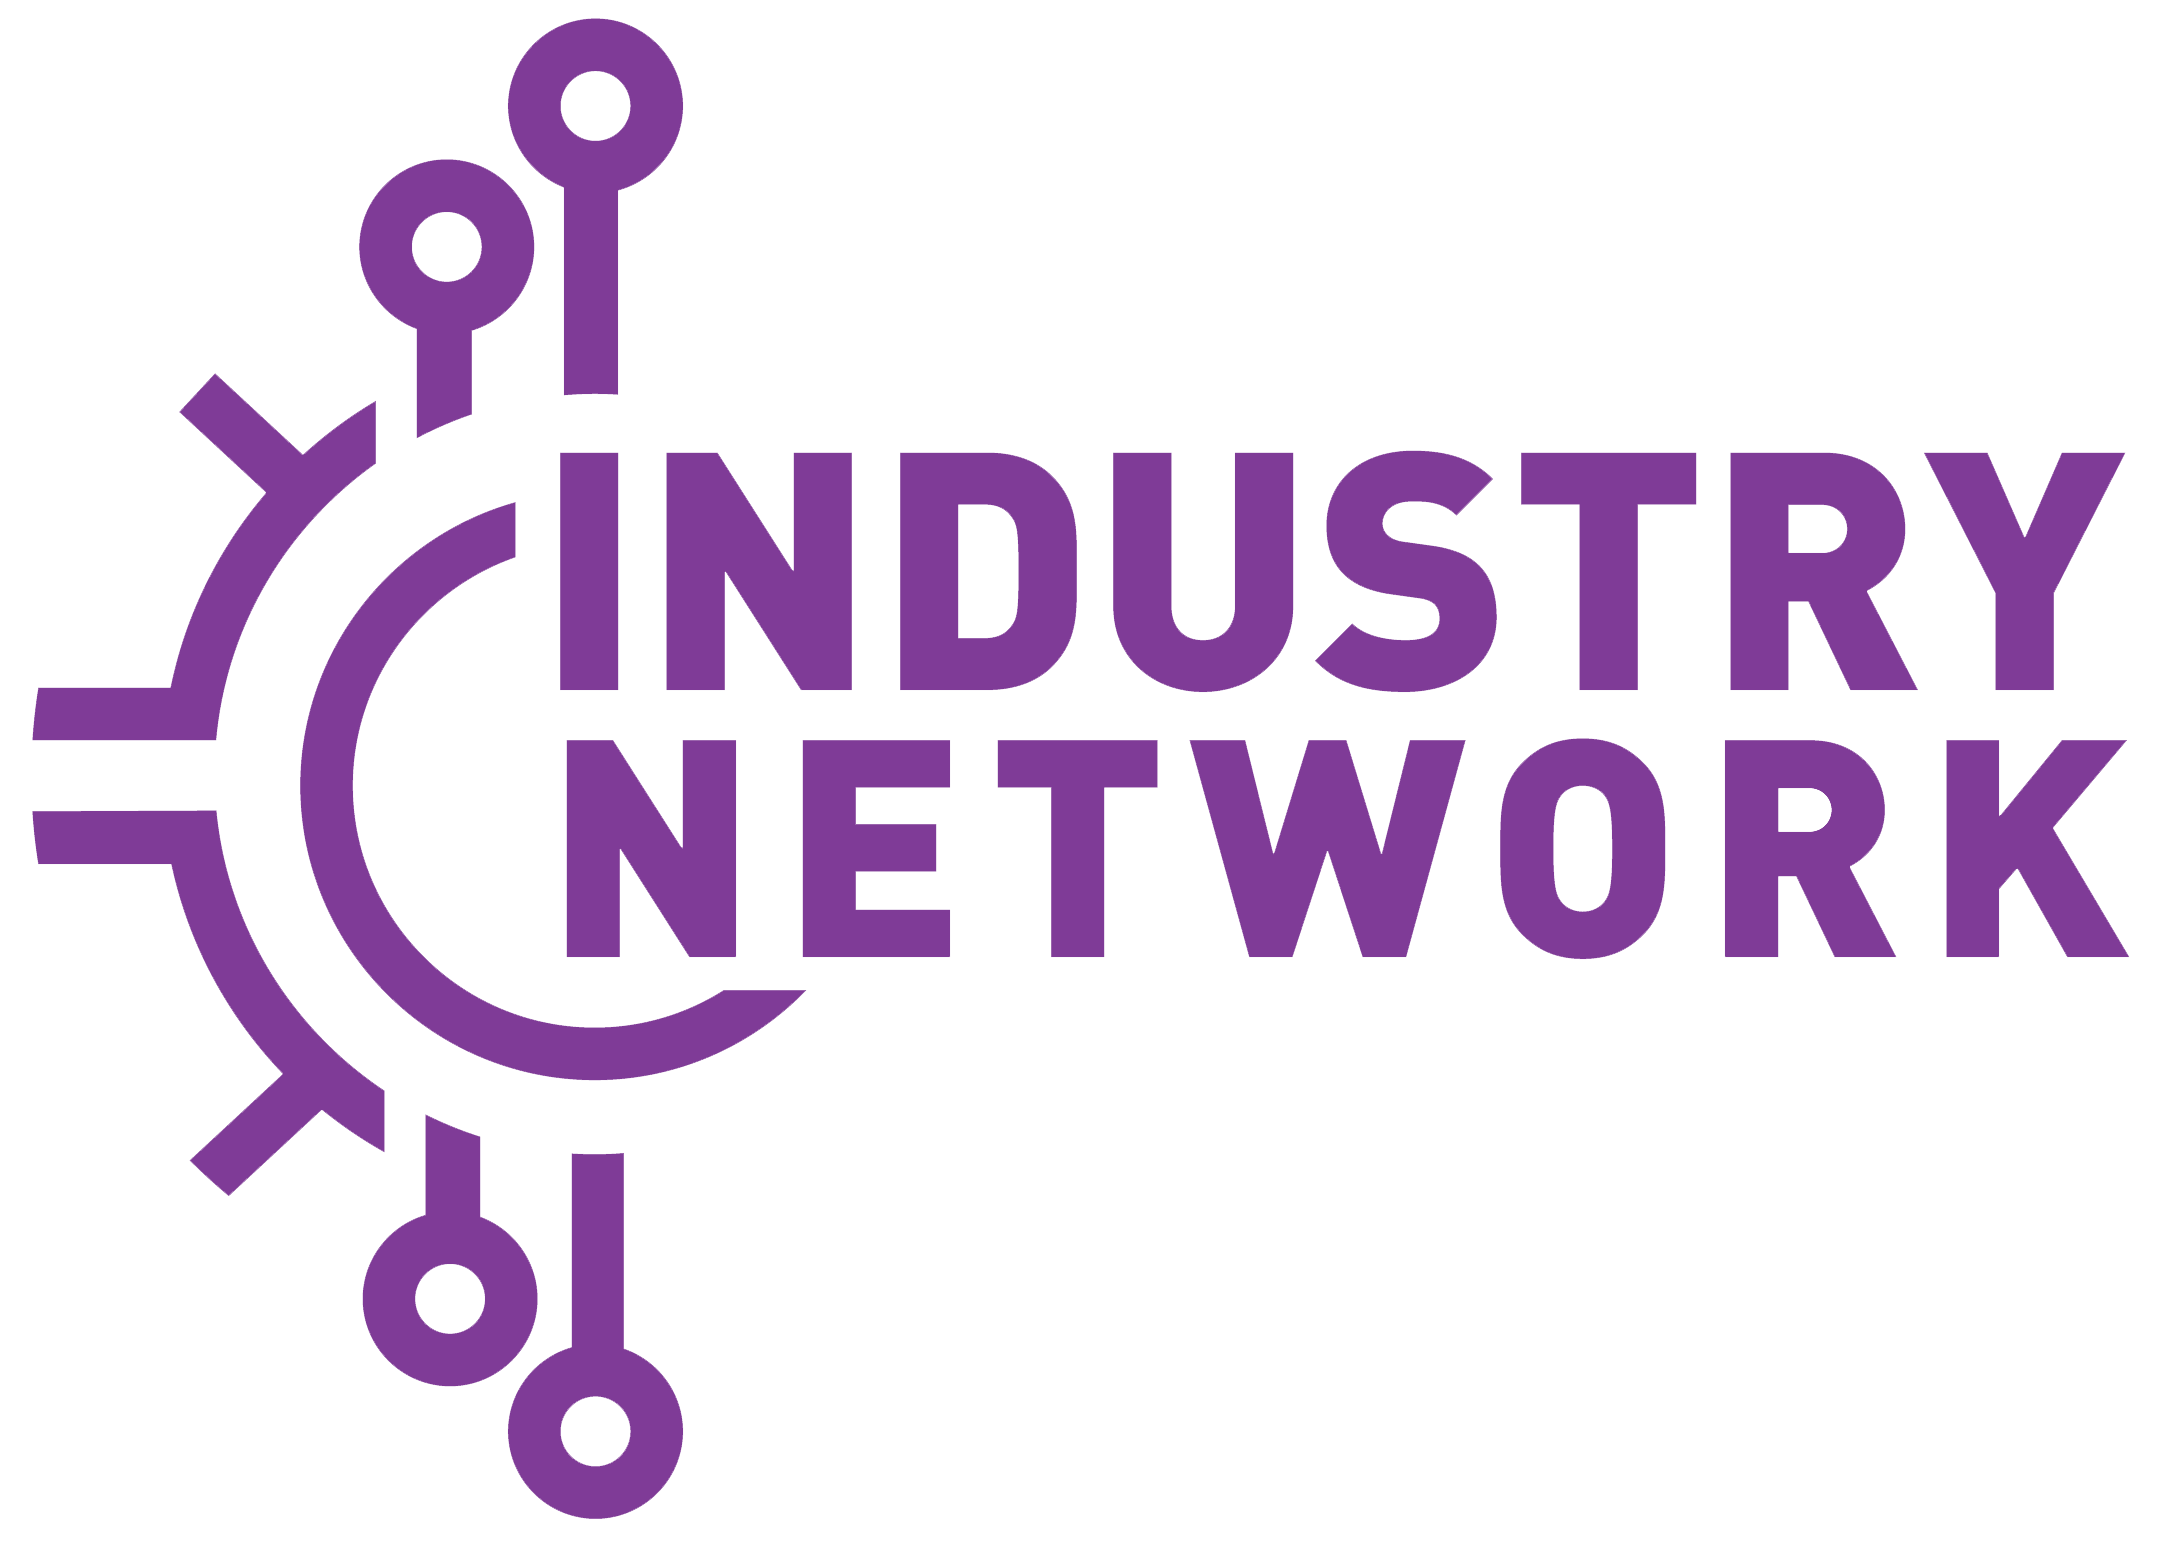 Industry Network